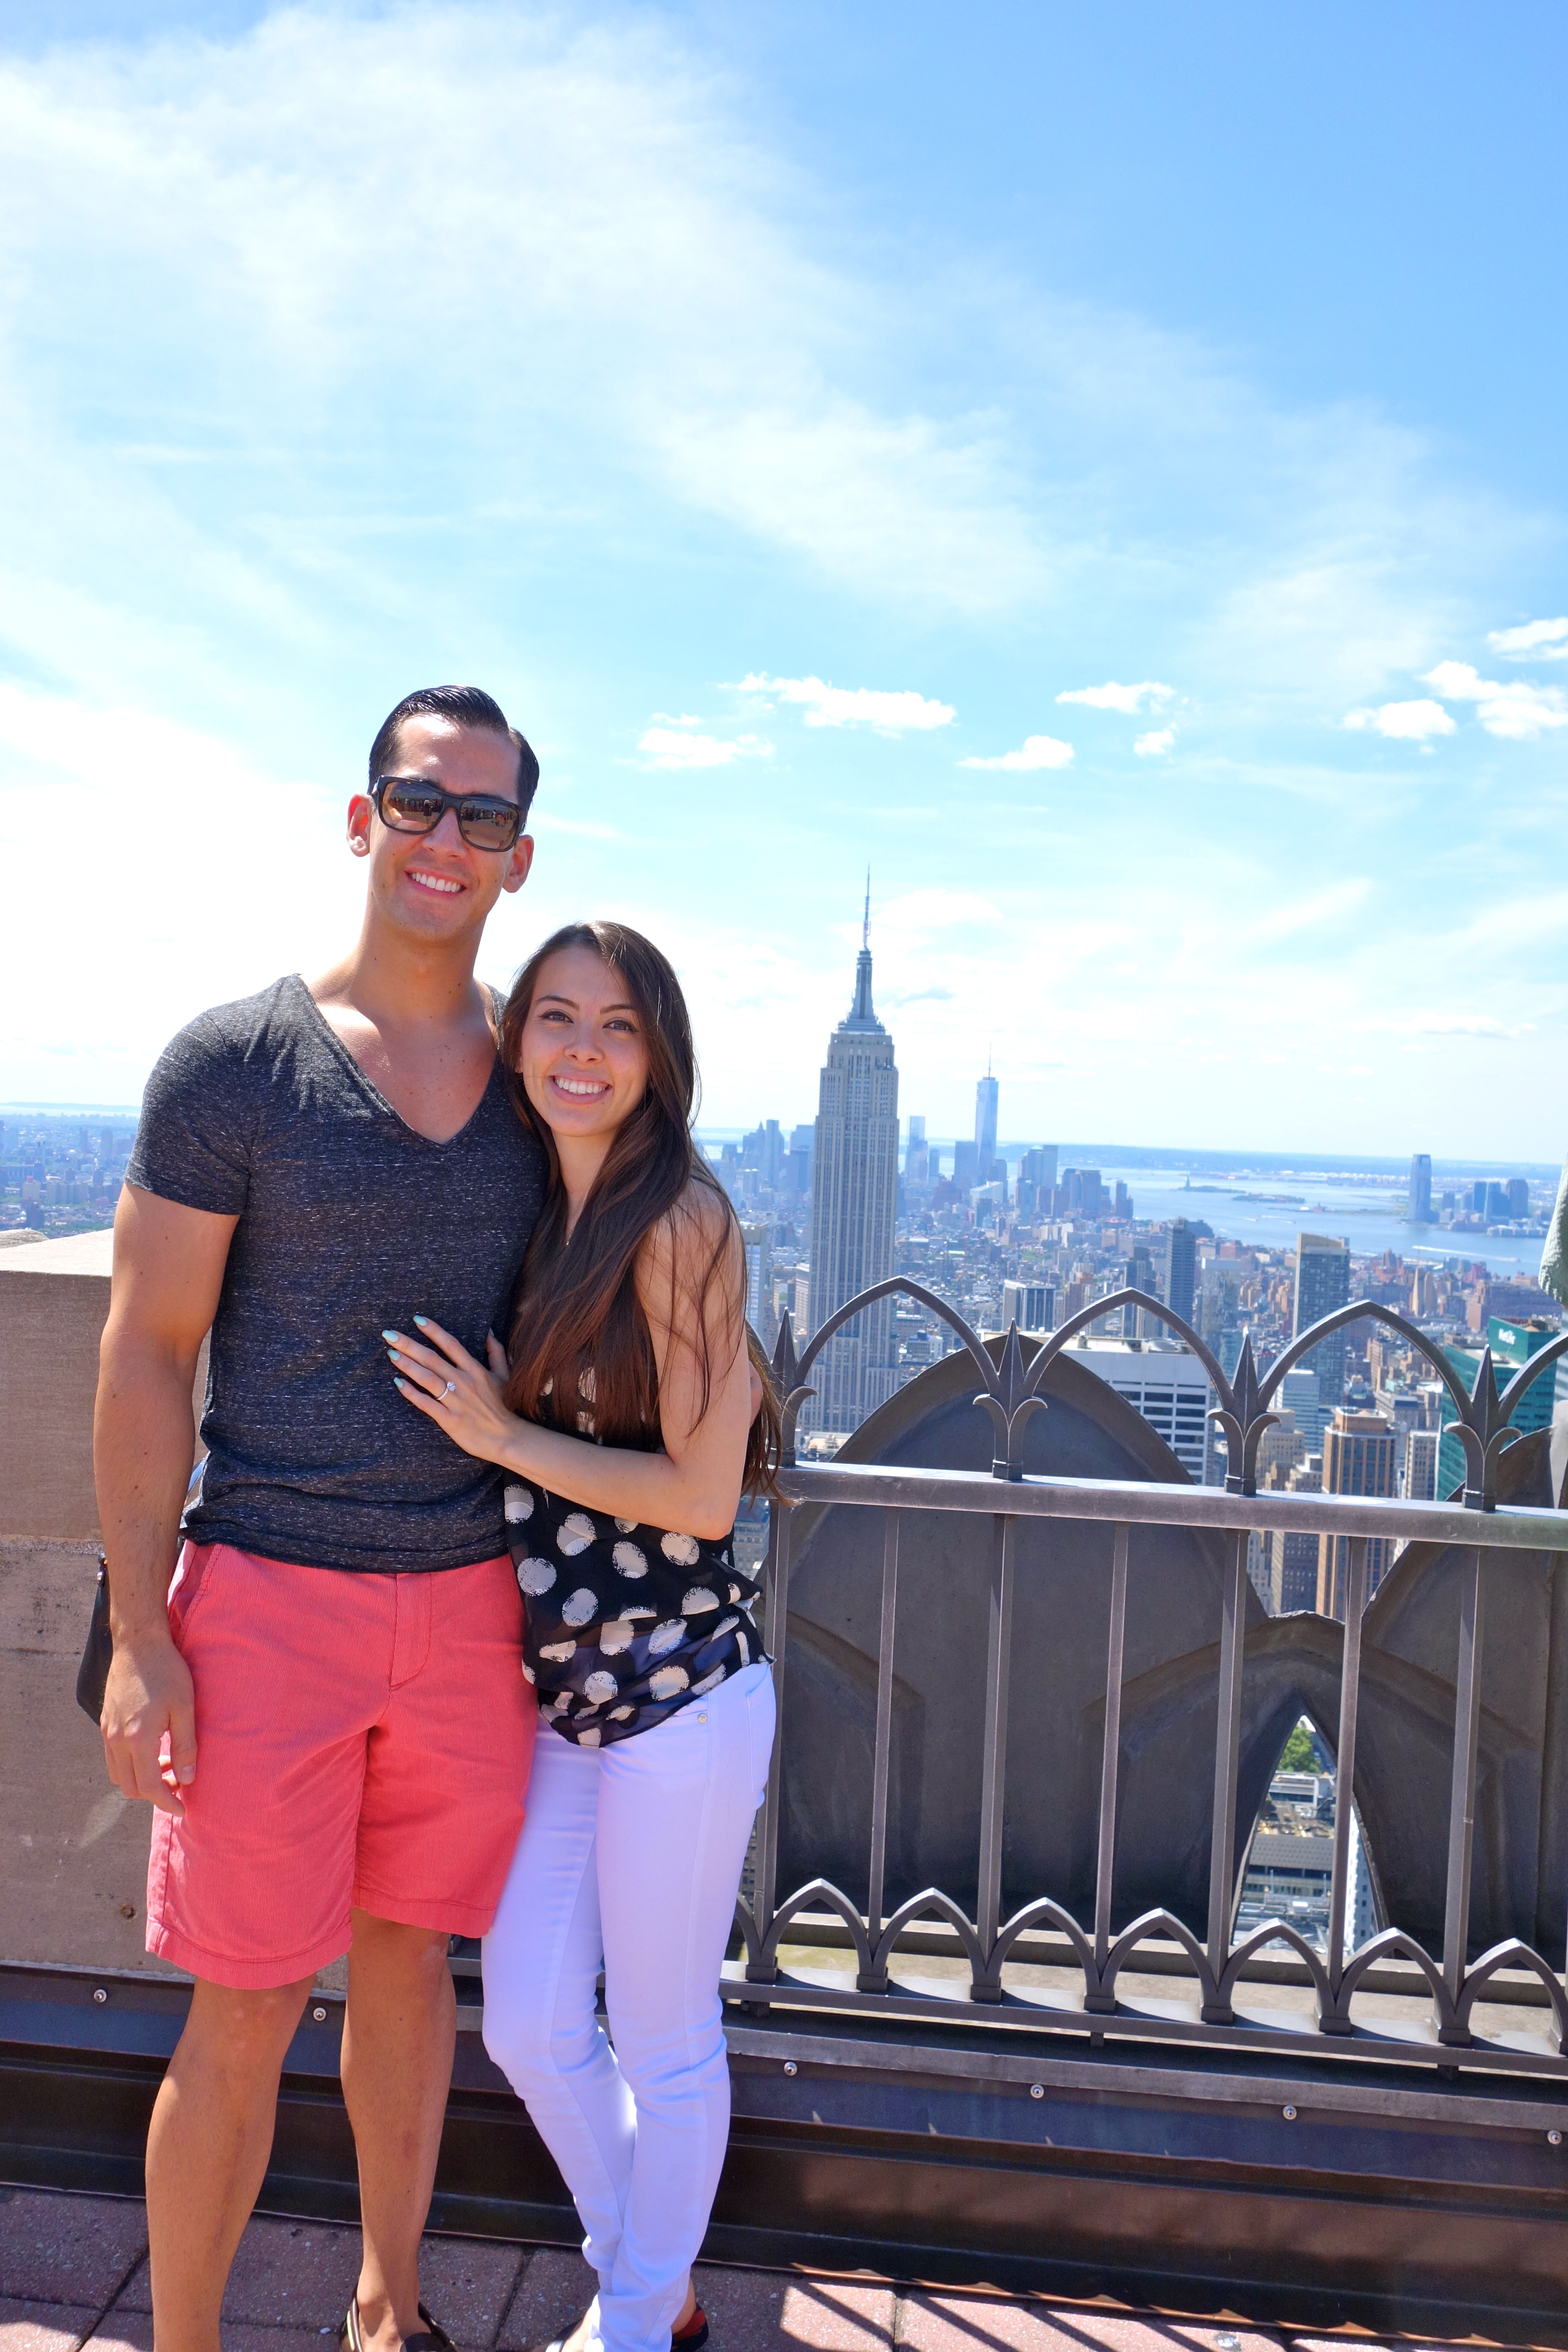 Image 10 of Shasling and David | Top of The Rock Proposal